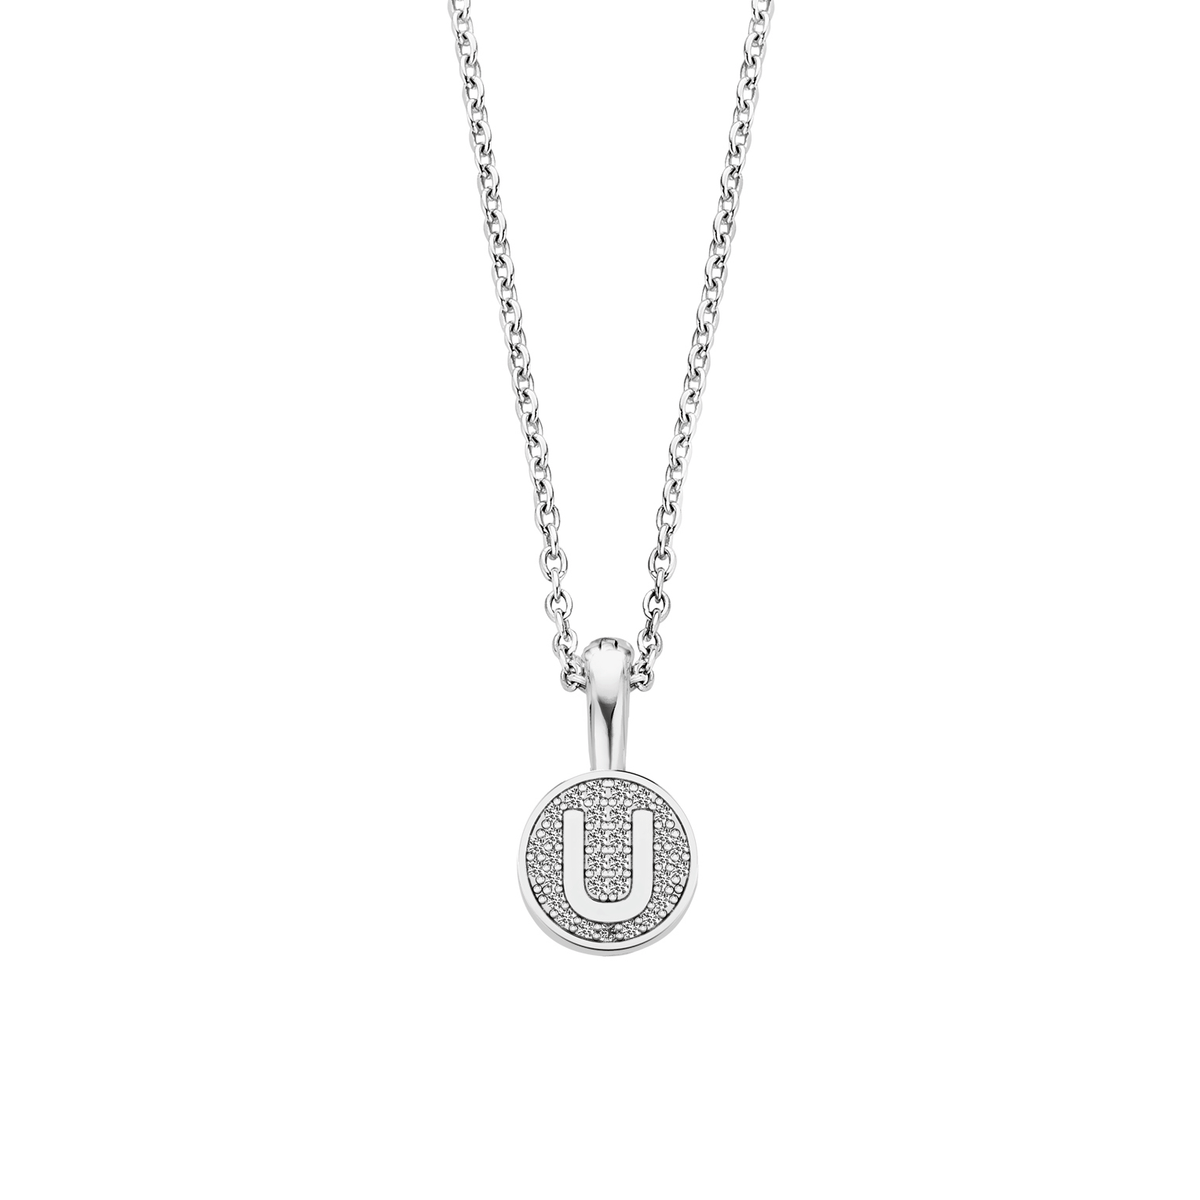 TI SENTO - Milano Necklace 3858LU